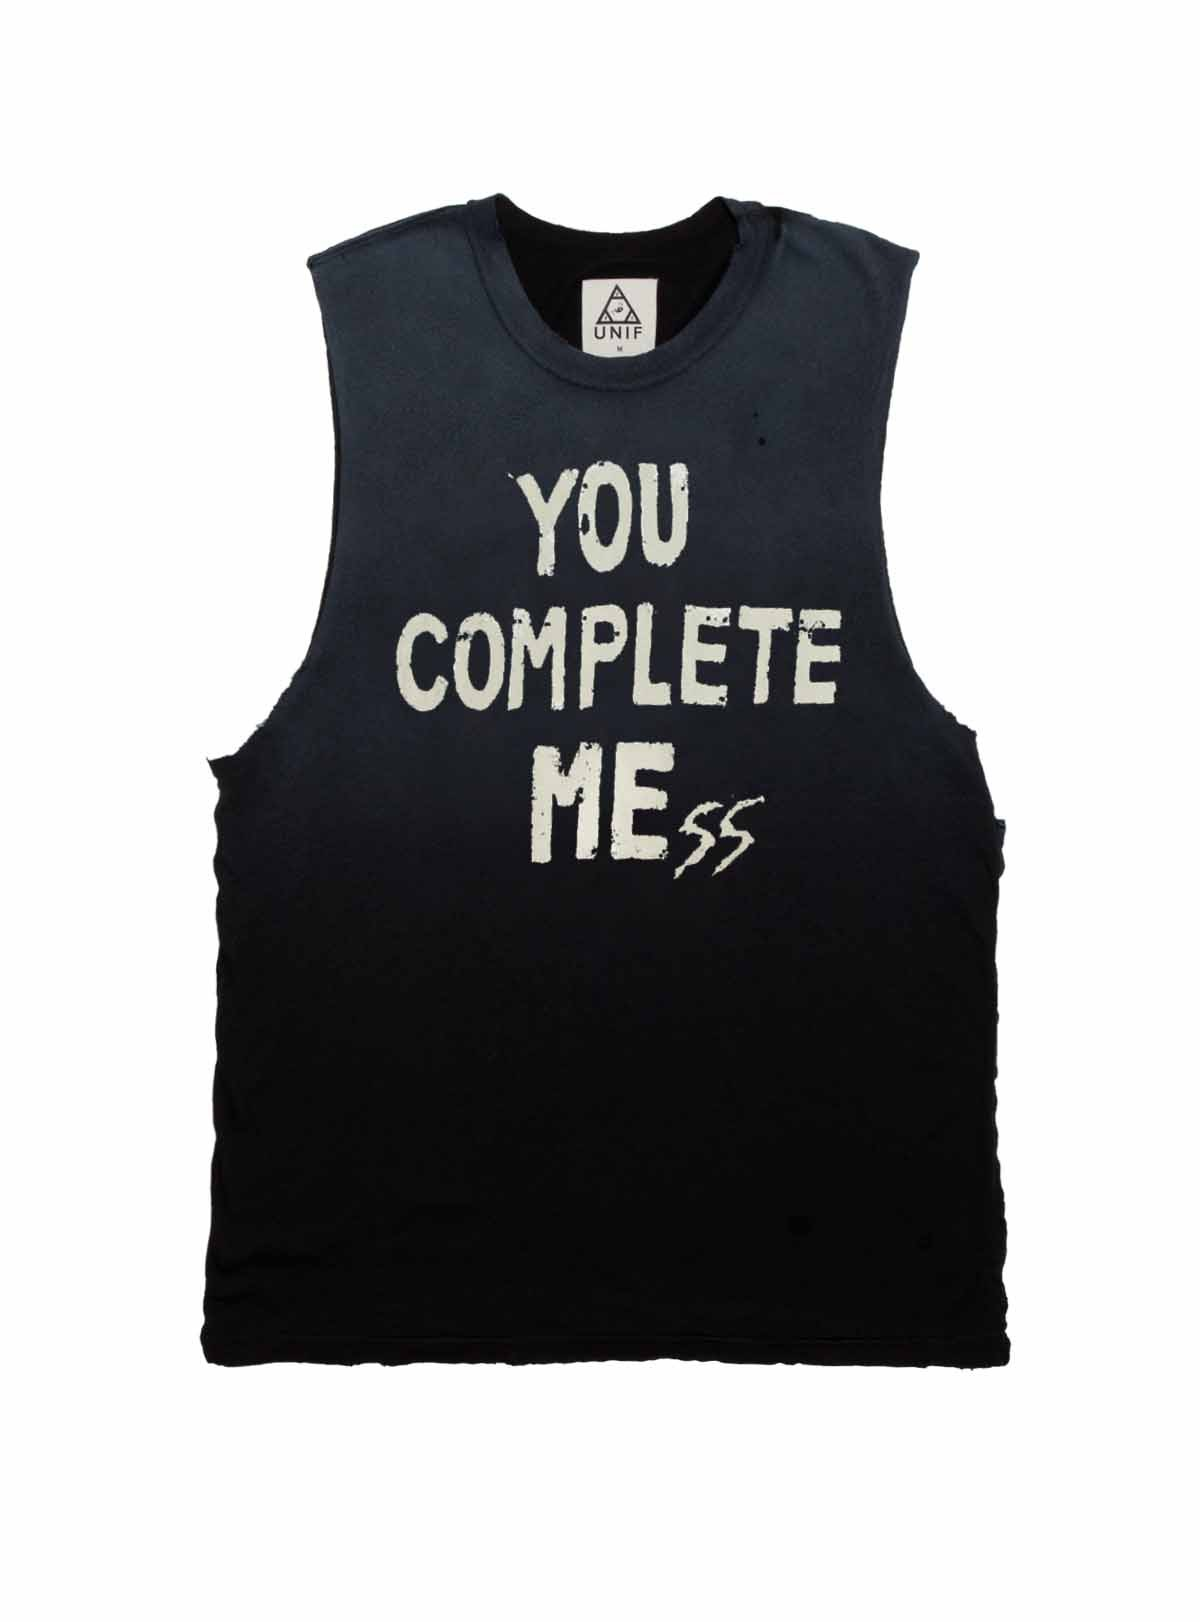 UNIF | YOU COMPLETE MESS